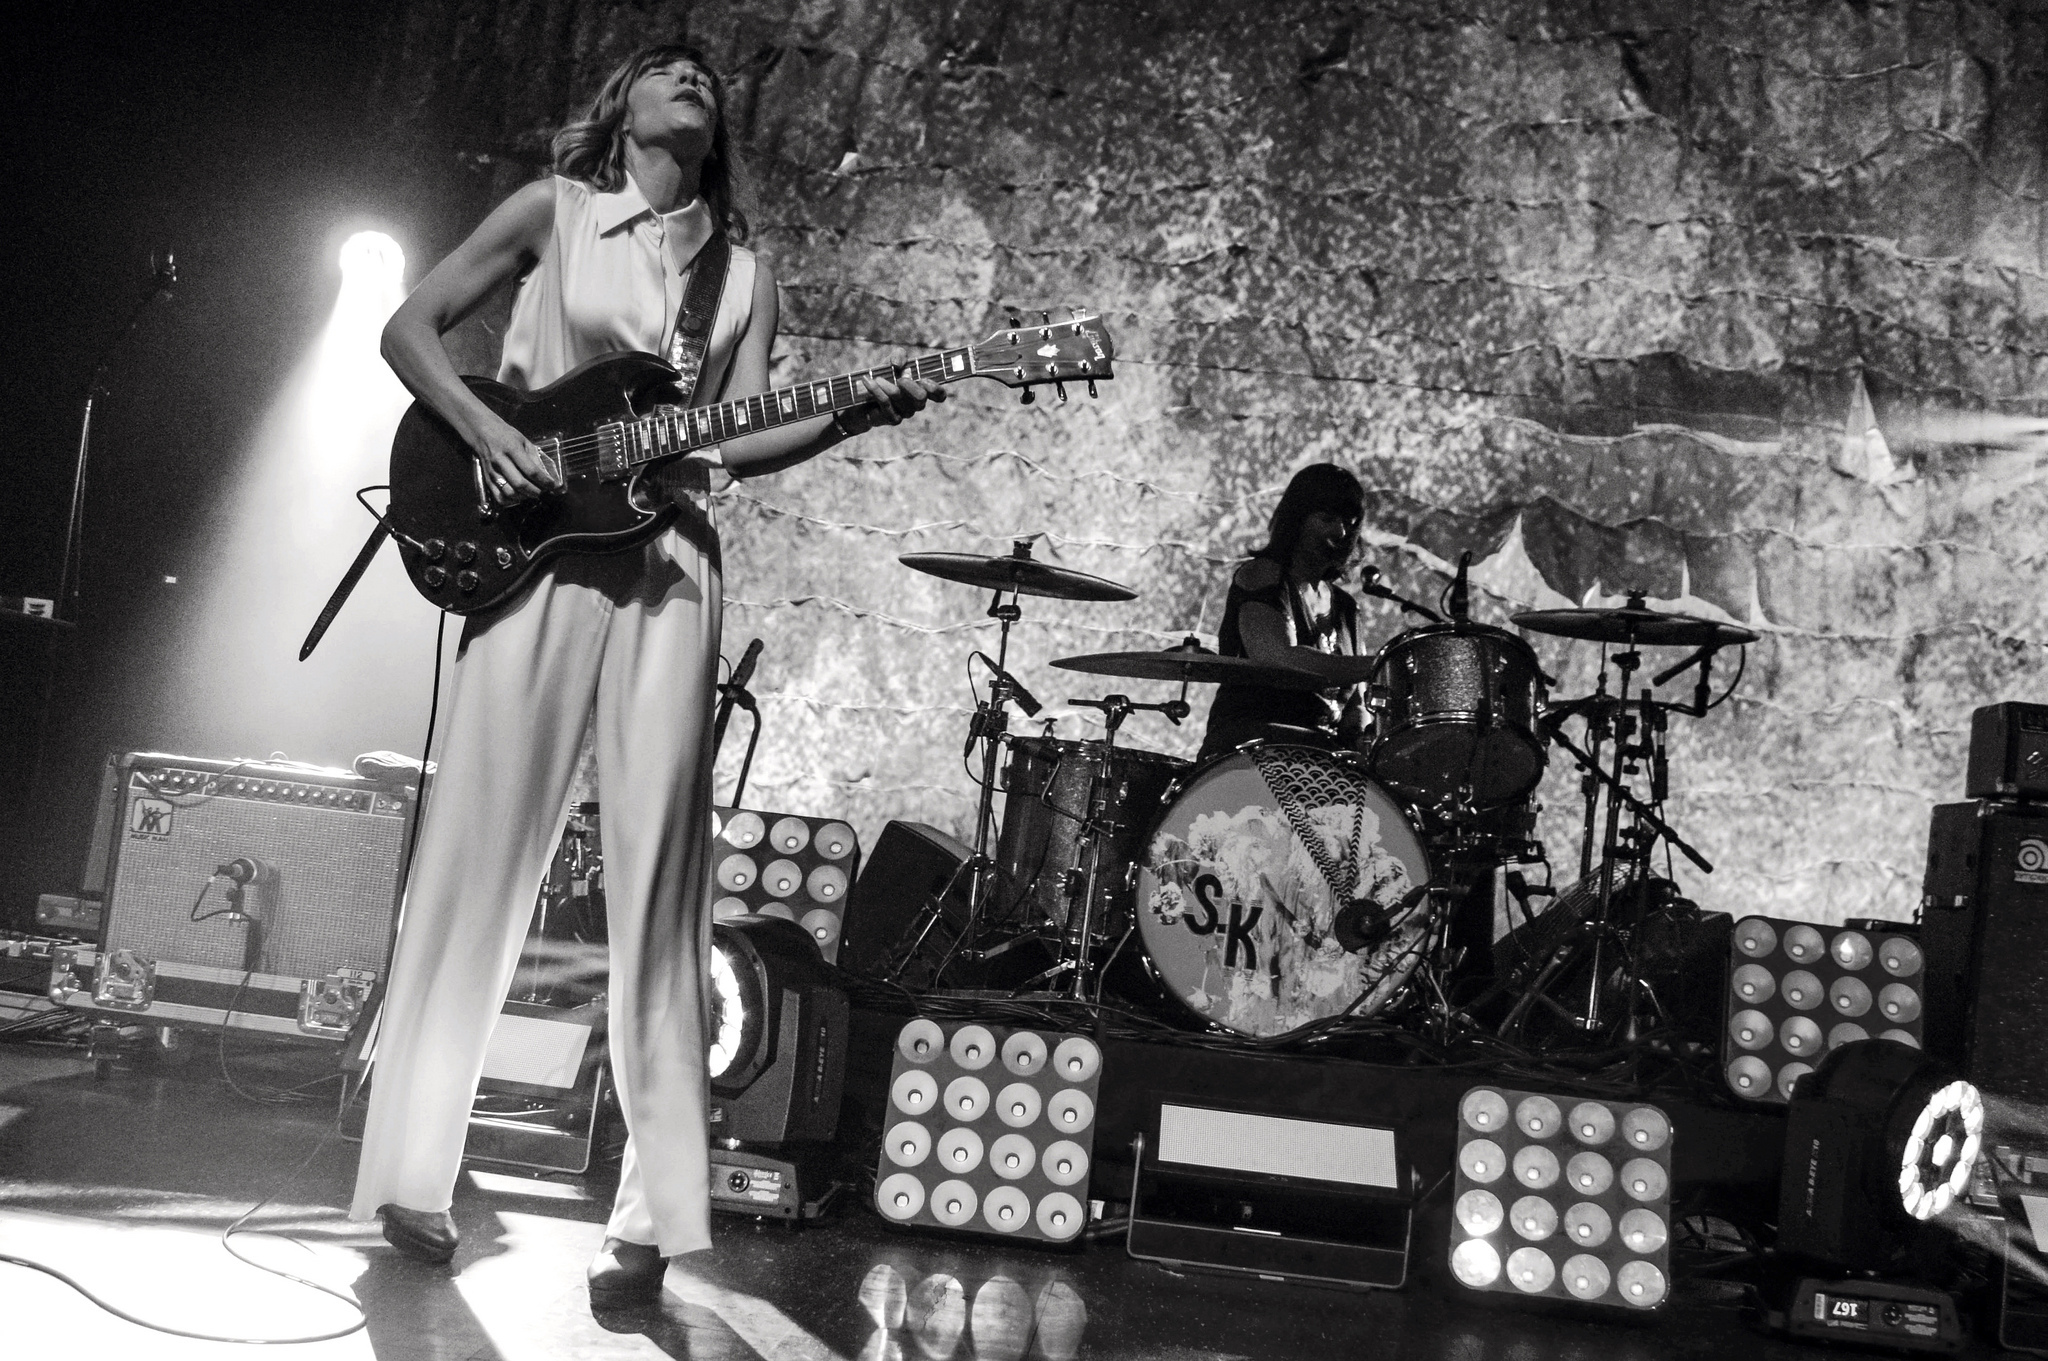 A reunited Sleater-Kinney rocks out at the Riviera theater Feb 17, 2015.